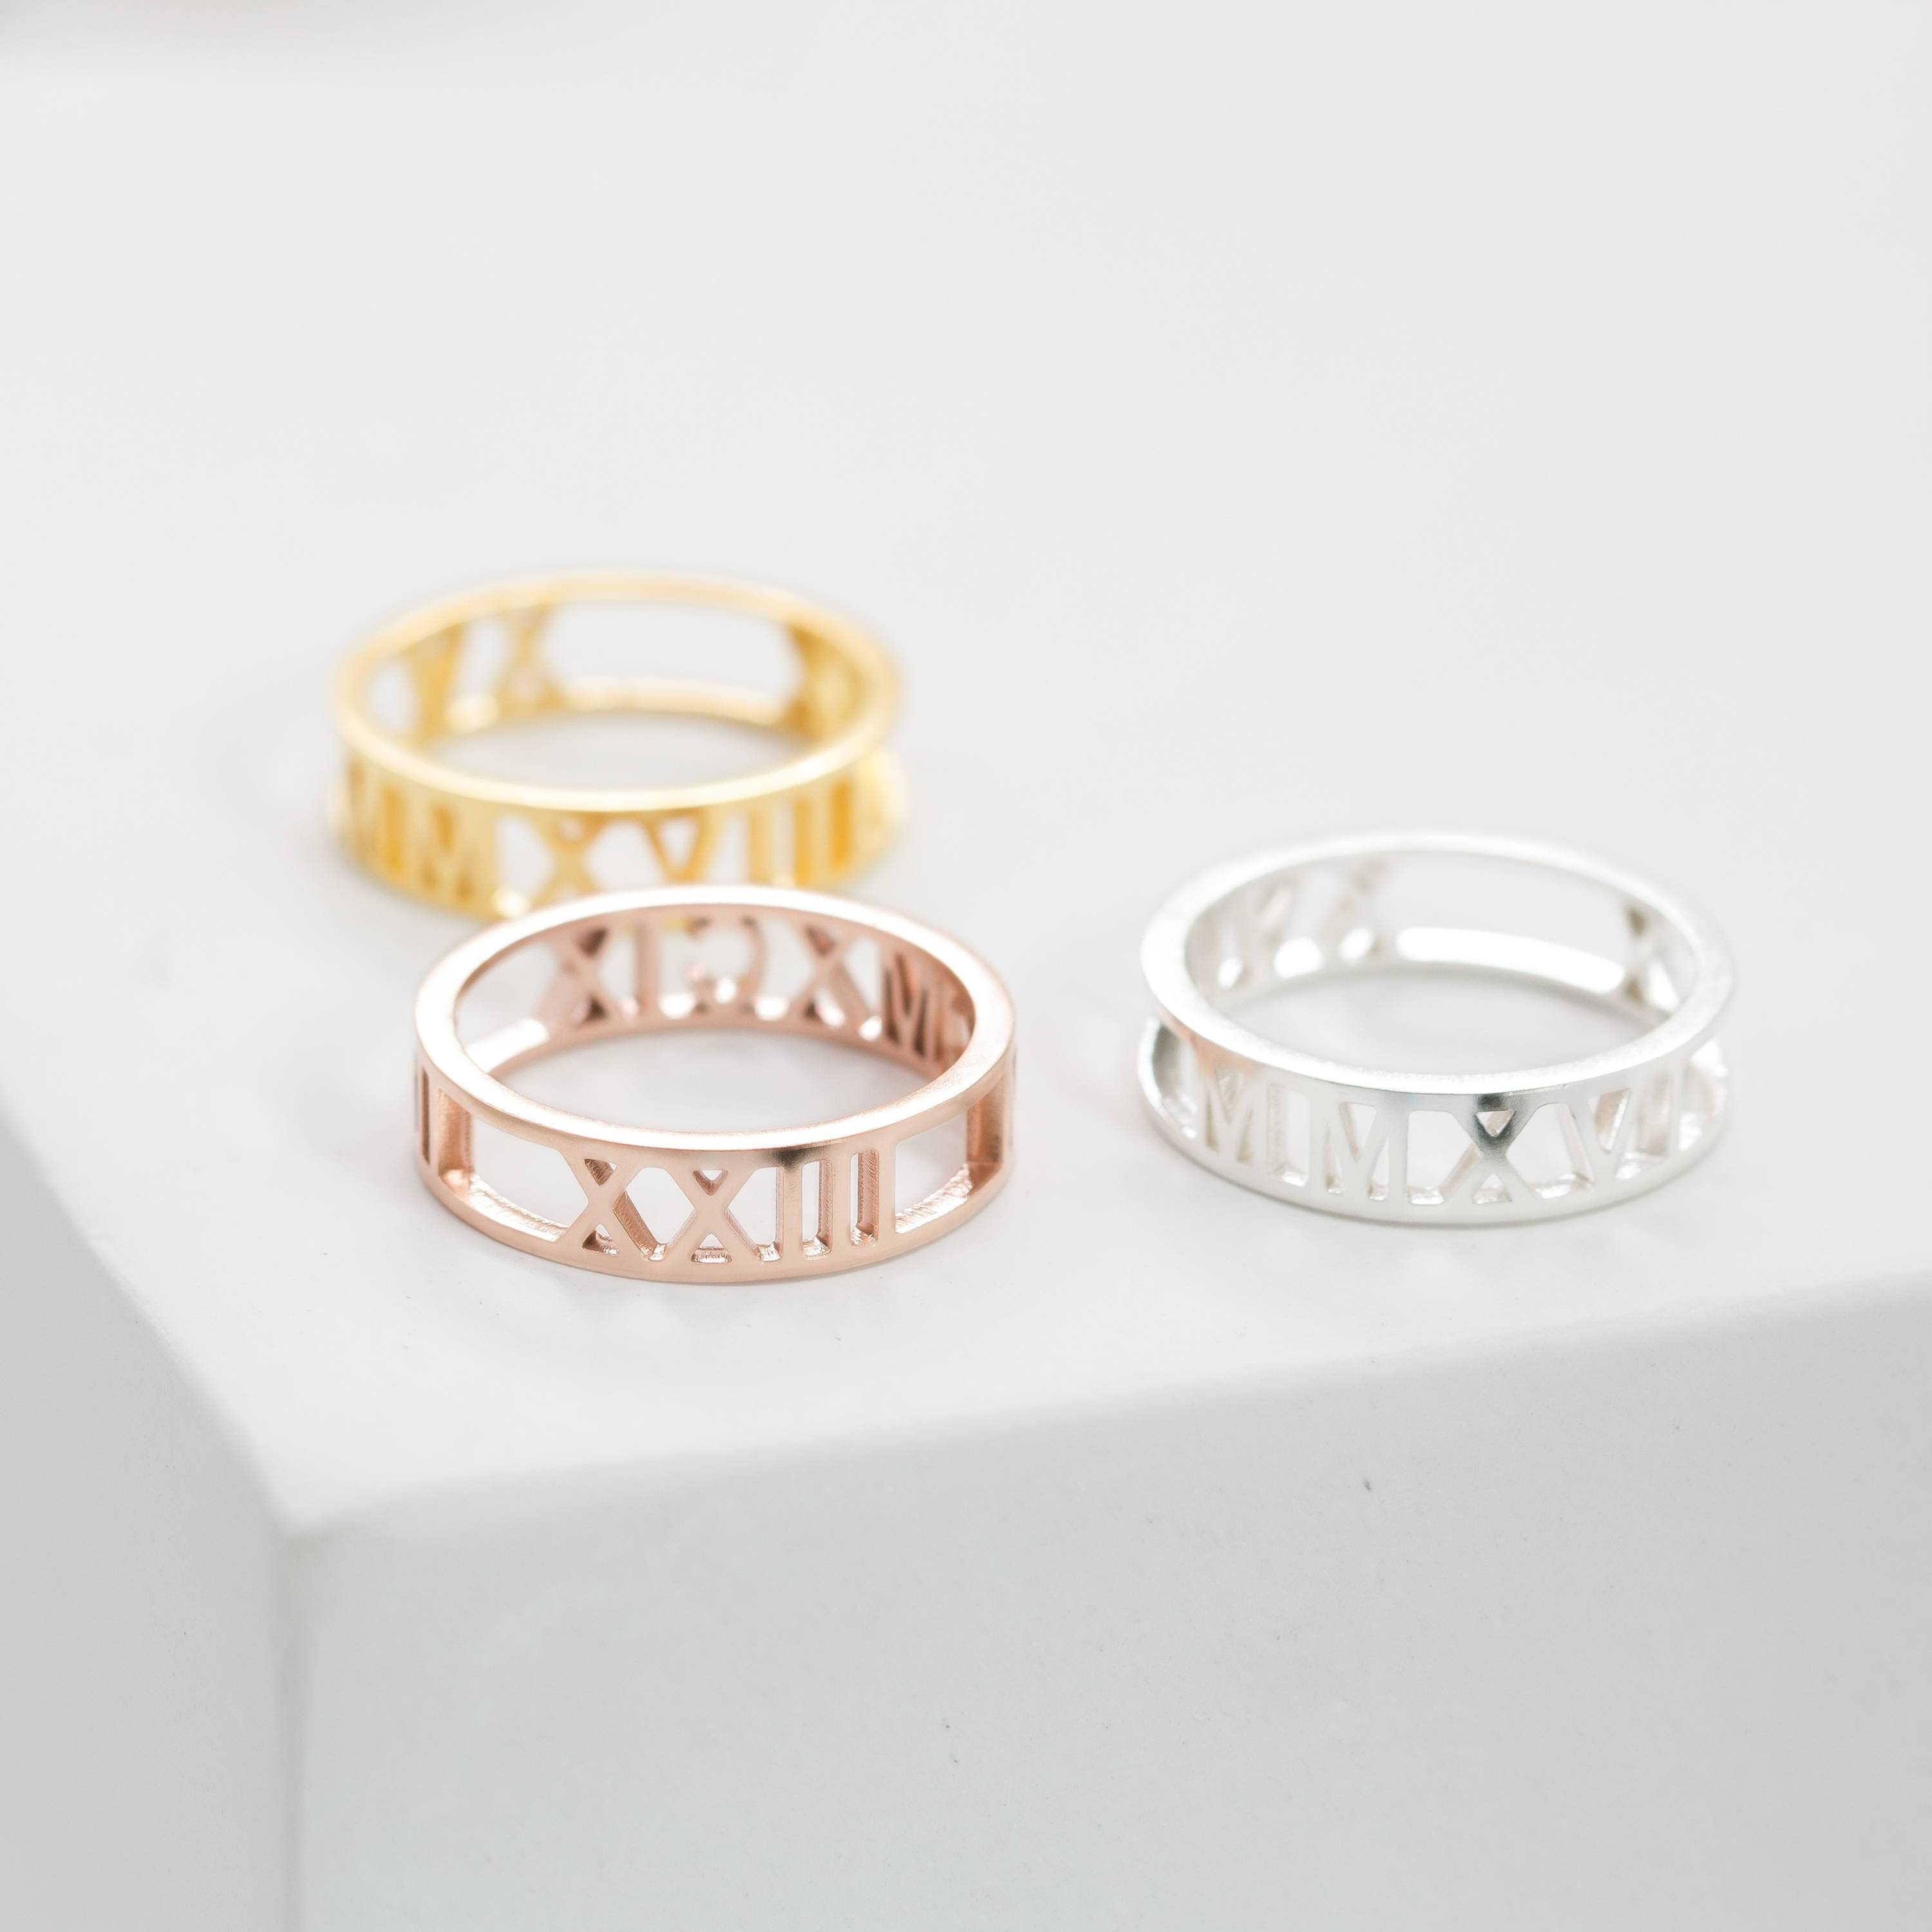 Dainty Personalized Jewelry Handcrafted Withcaitlynminimalist Within Current Personalized Anniversary Rings (View 4 of 25)